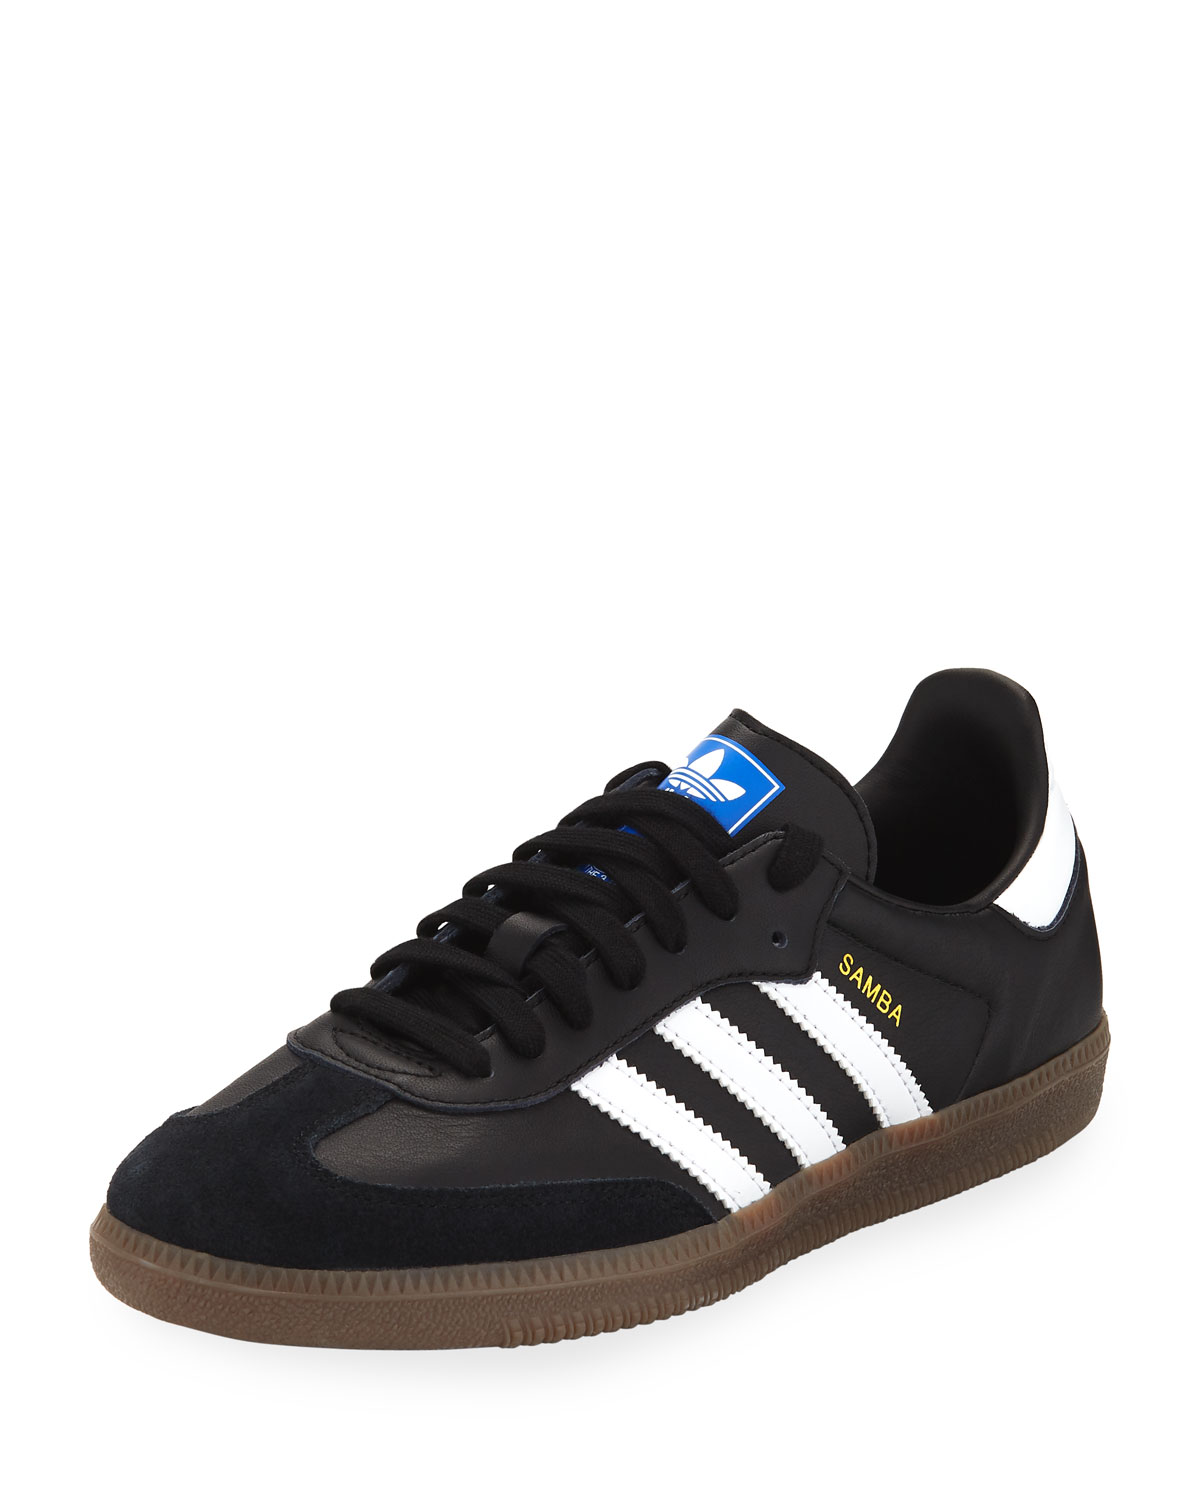 a55f90cfb580 Adidas Samba Original Leather Suede Sneakers